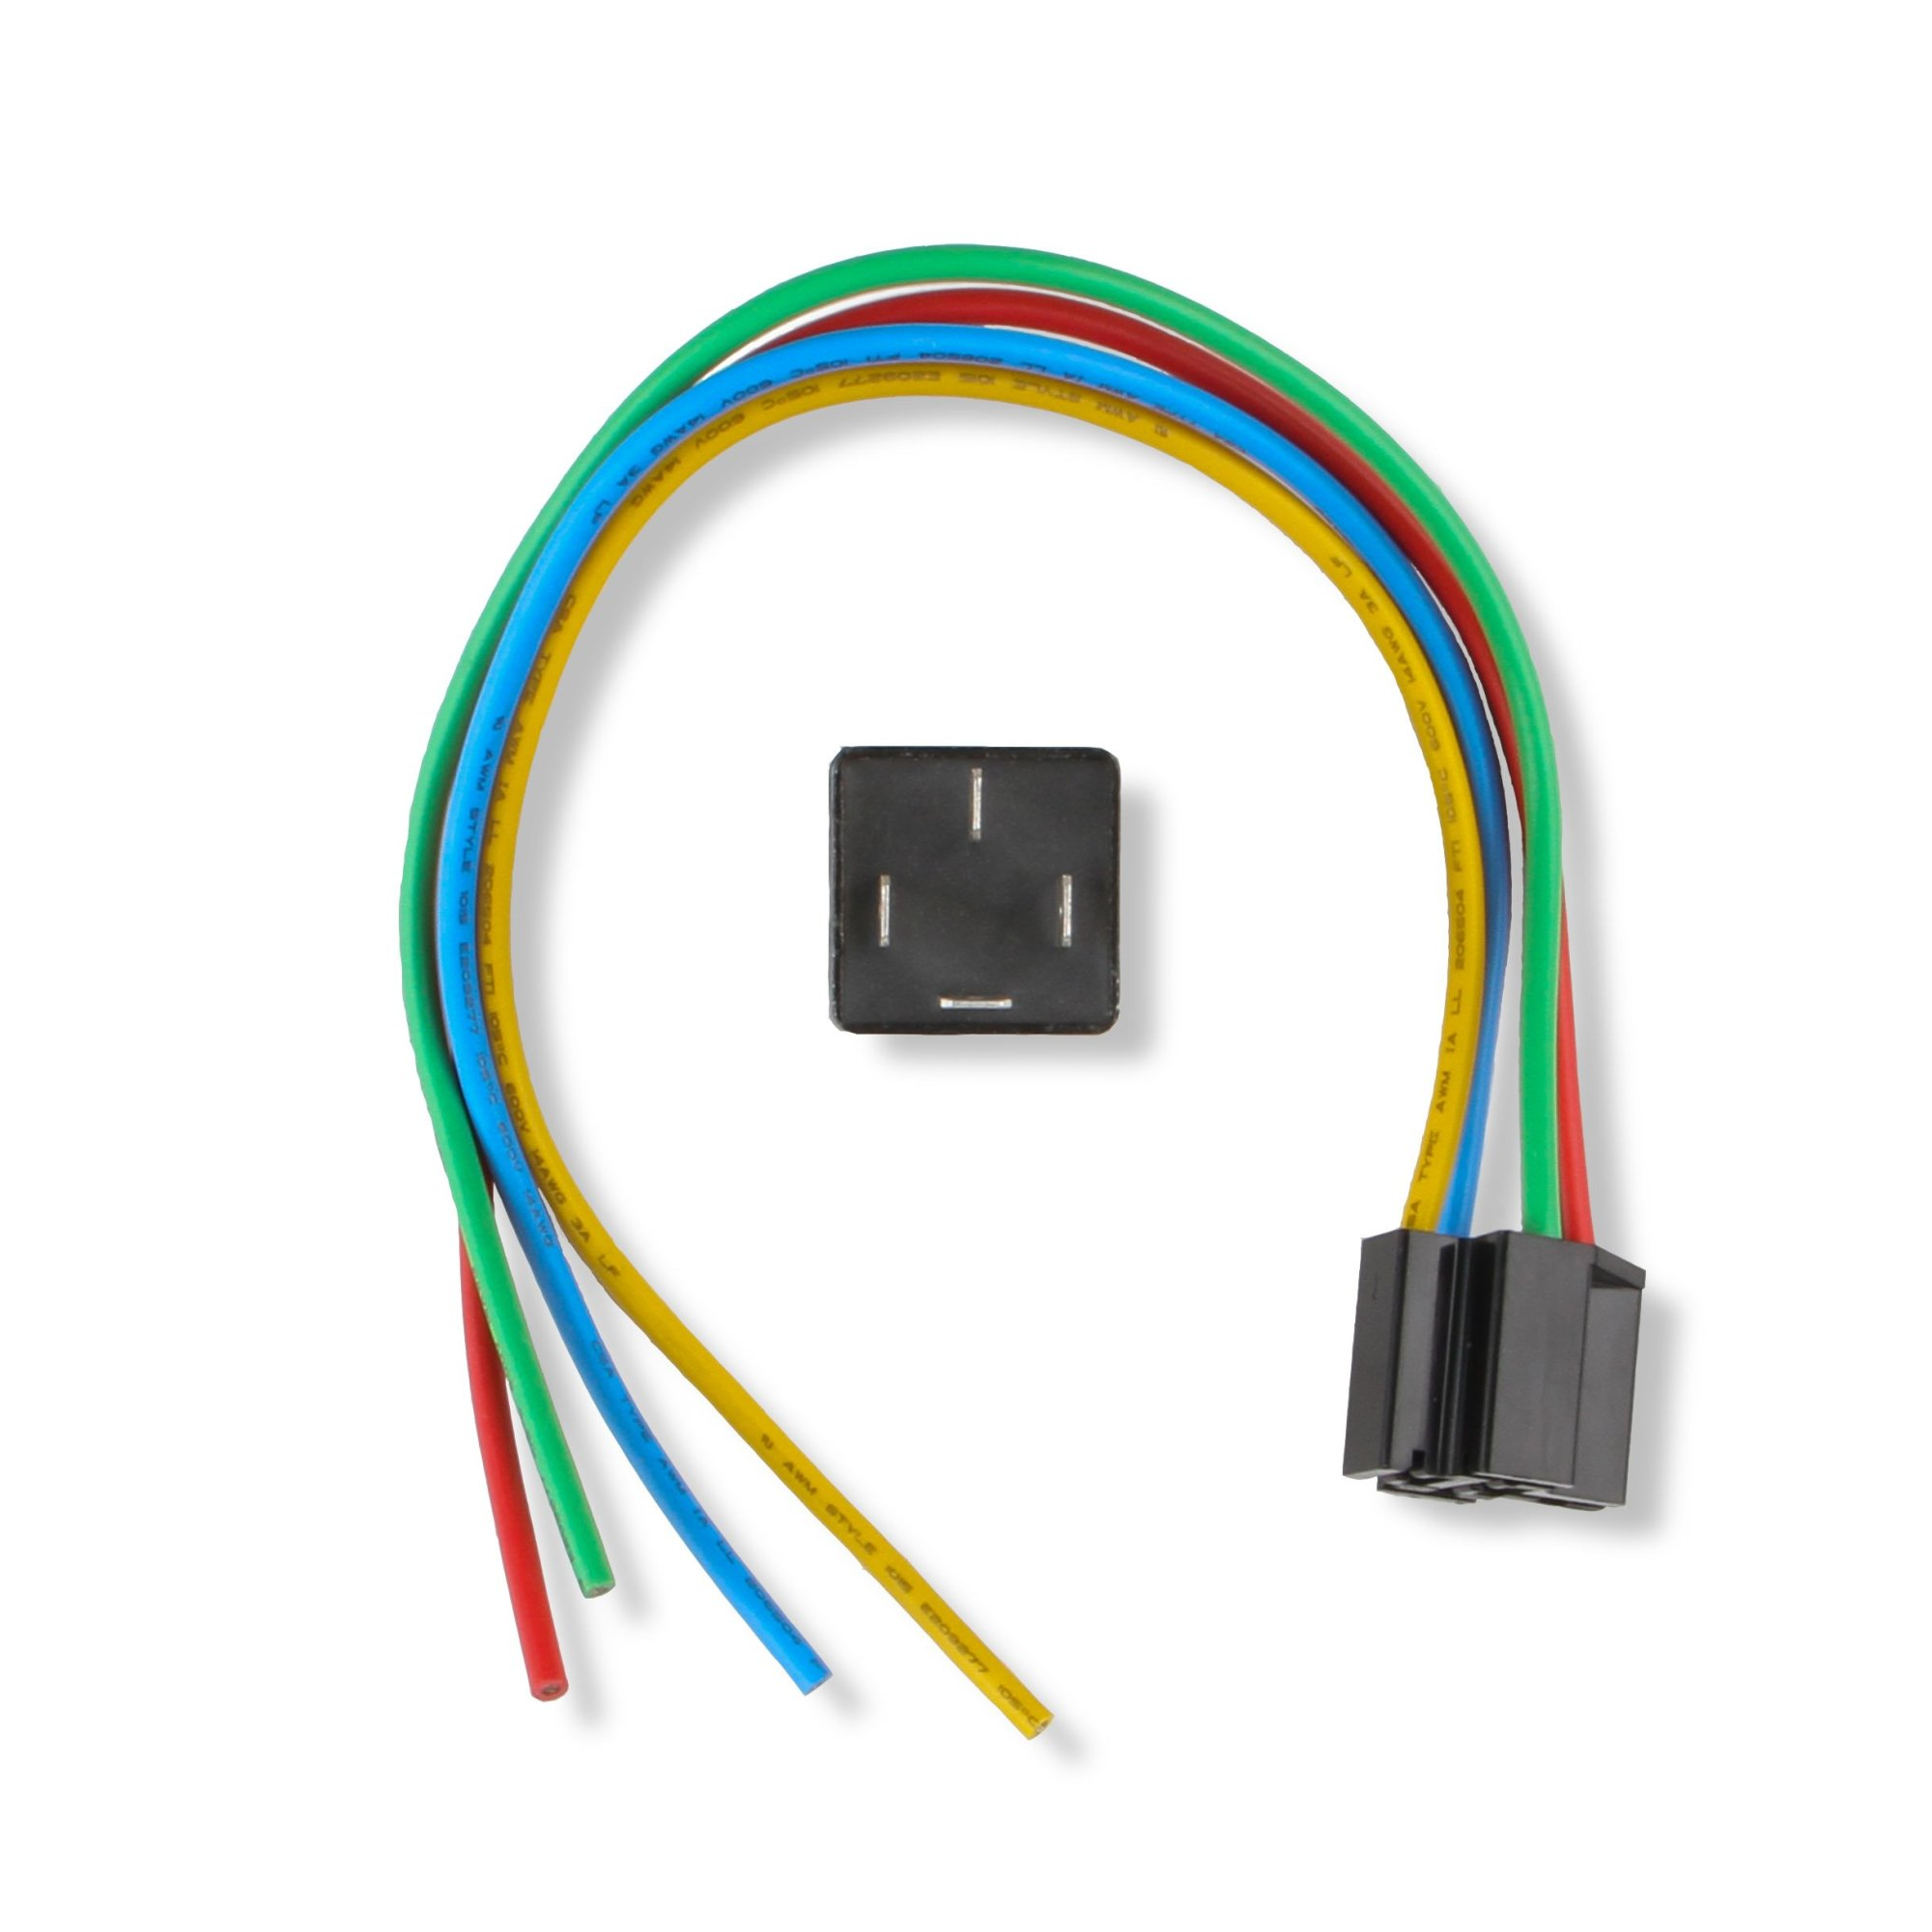 hight resolution of 89612 msd solid state n o relay w socket harness image